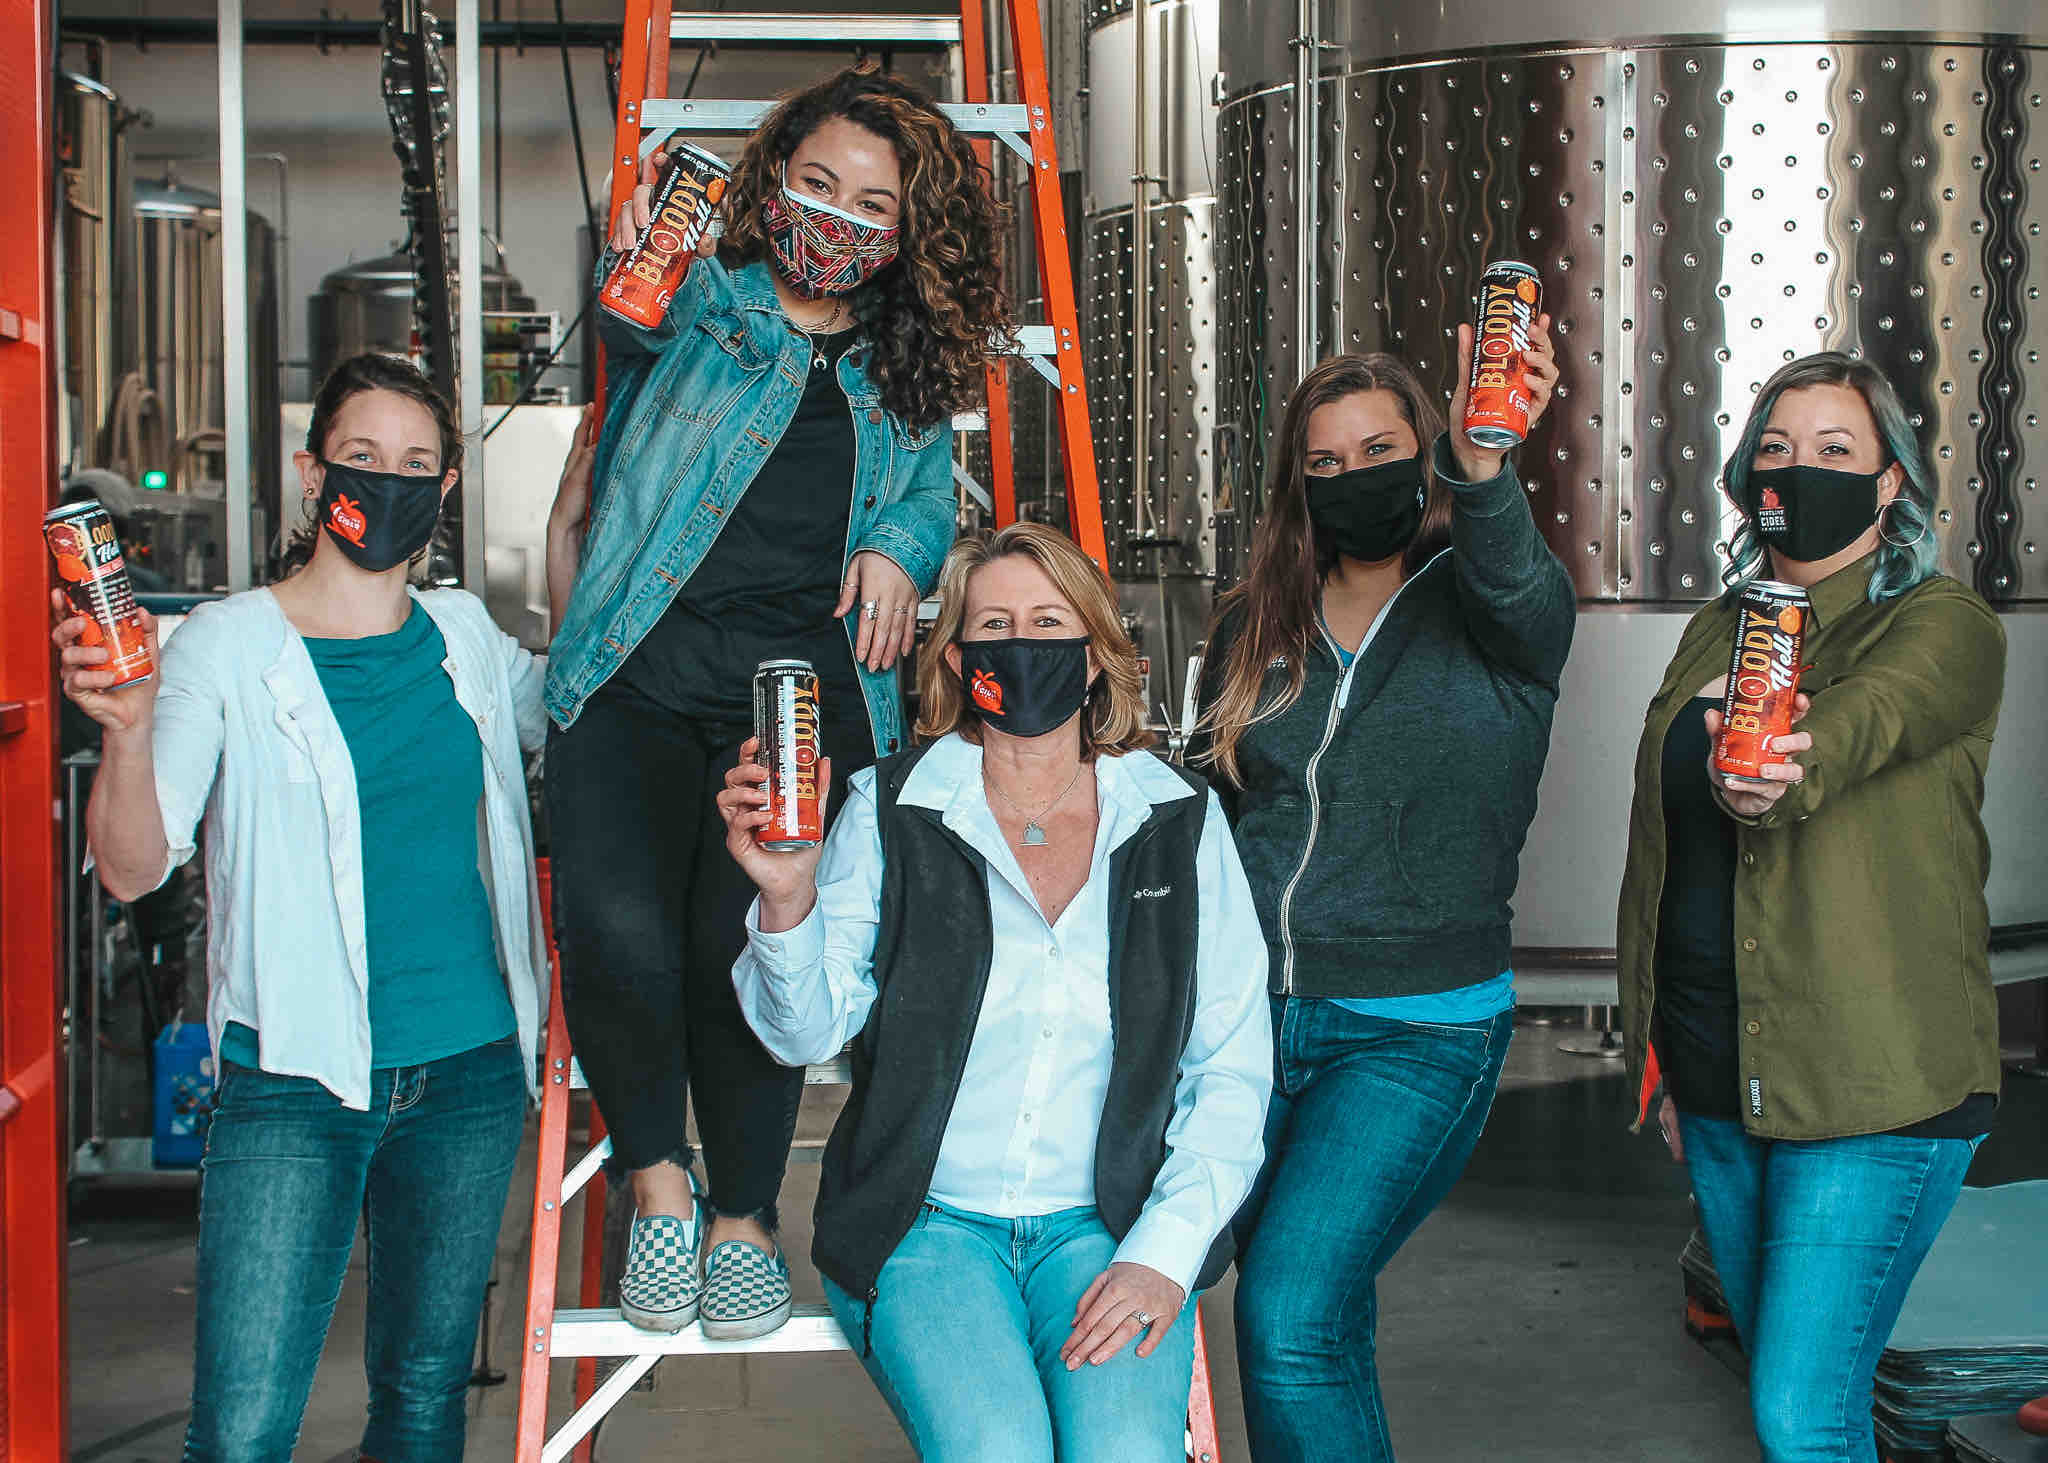 The ladies of Portland Cider Company ready to celebrate Womens History Month during the month of March. (image courtesy of Portland Cider Co.)